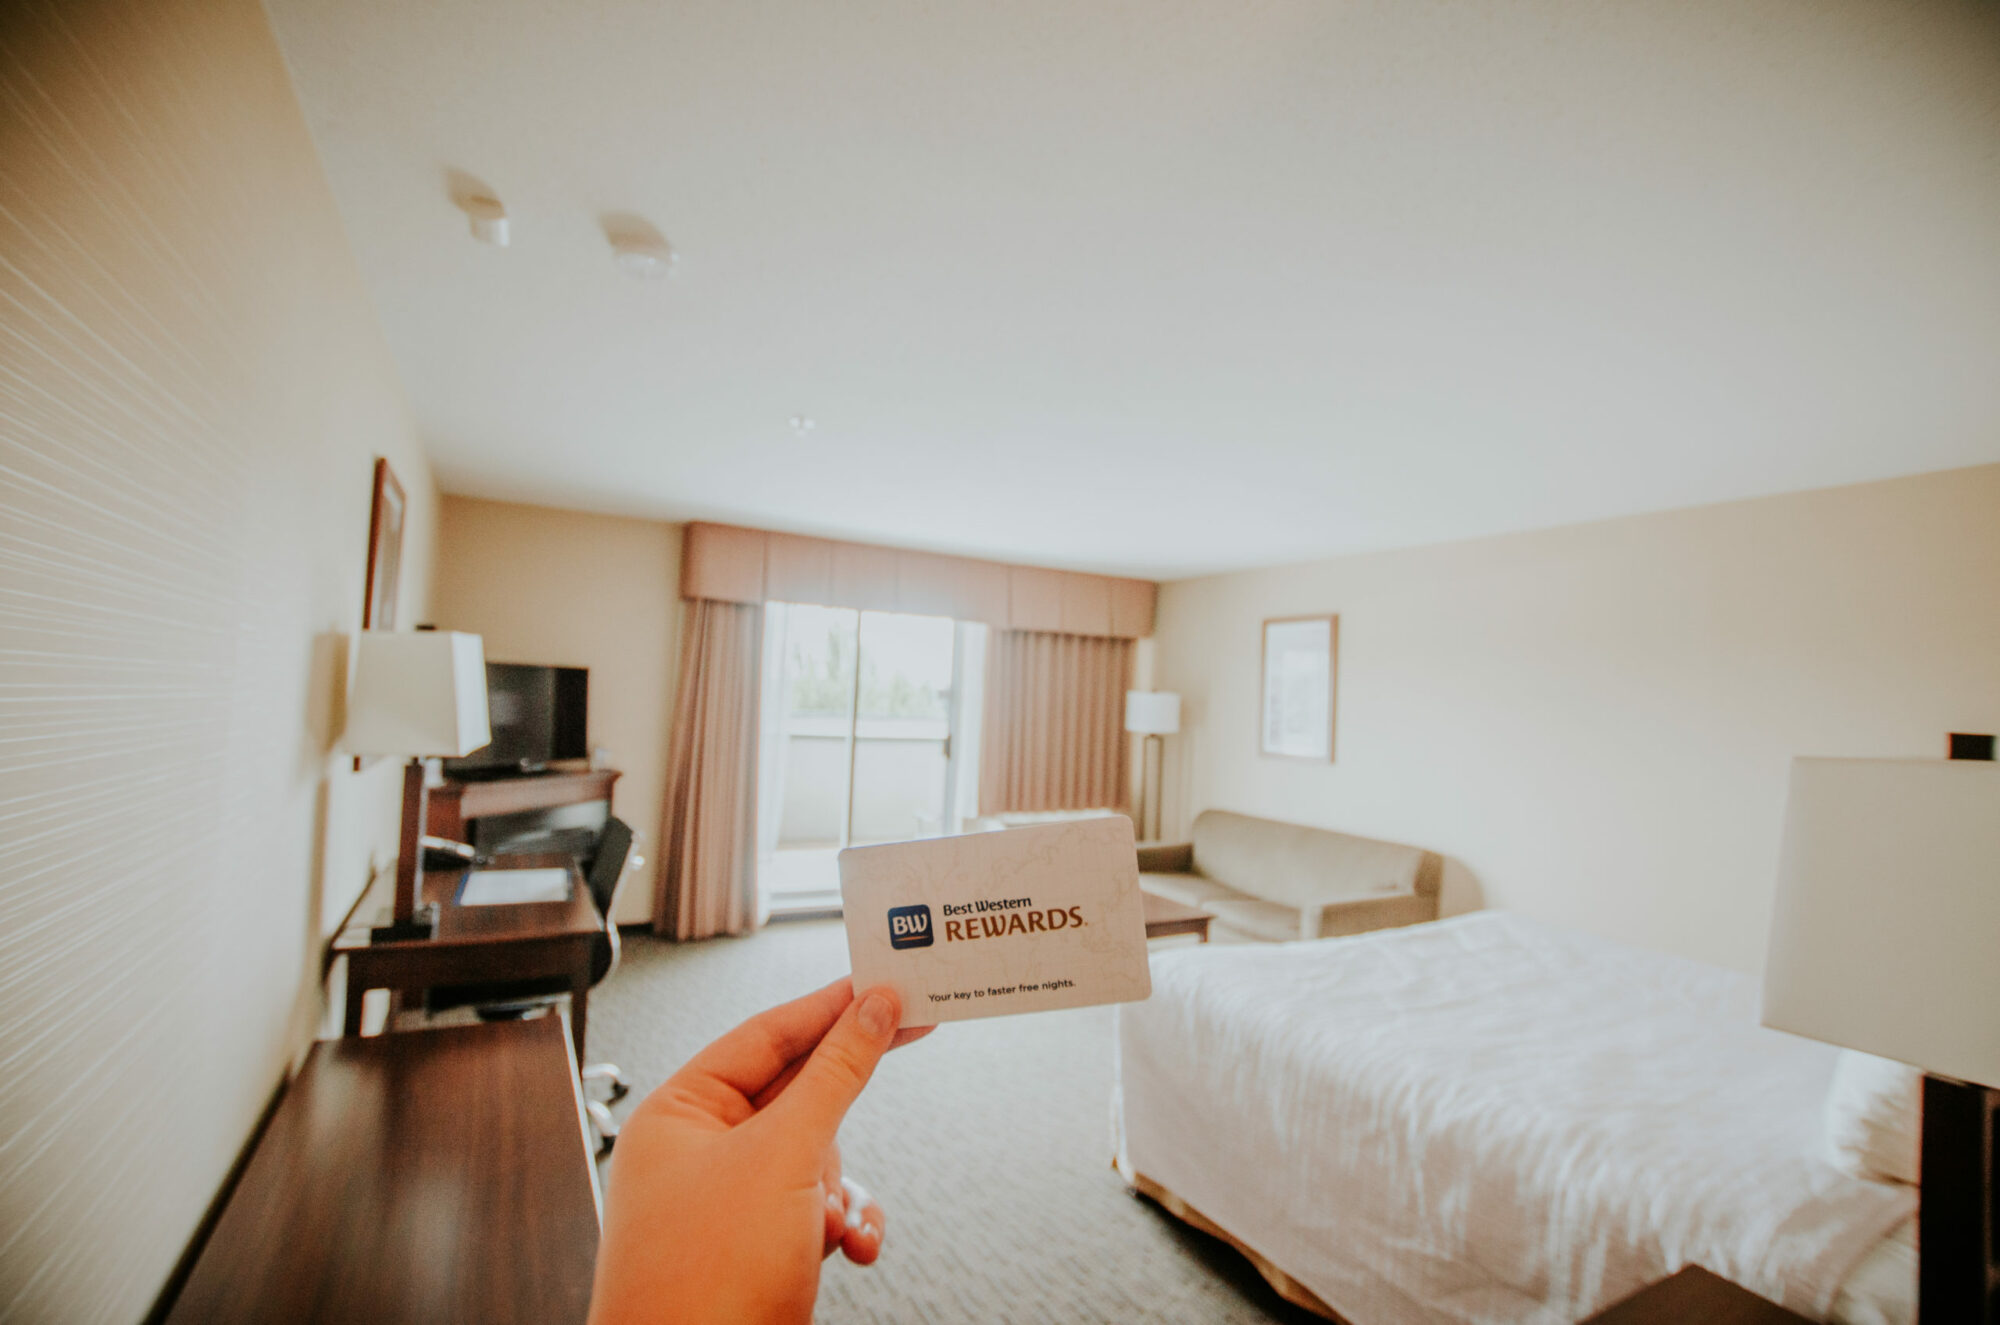 Best Western Business Executive Suite Room Key in Mission